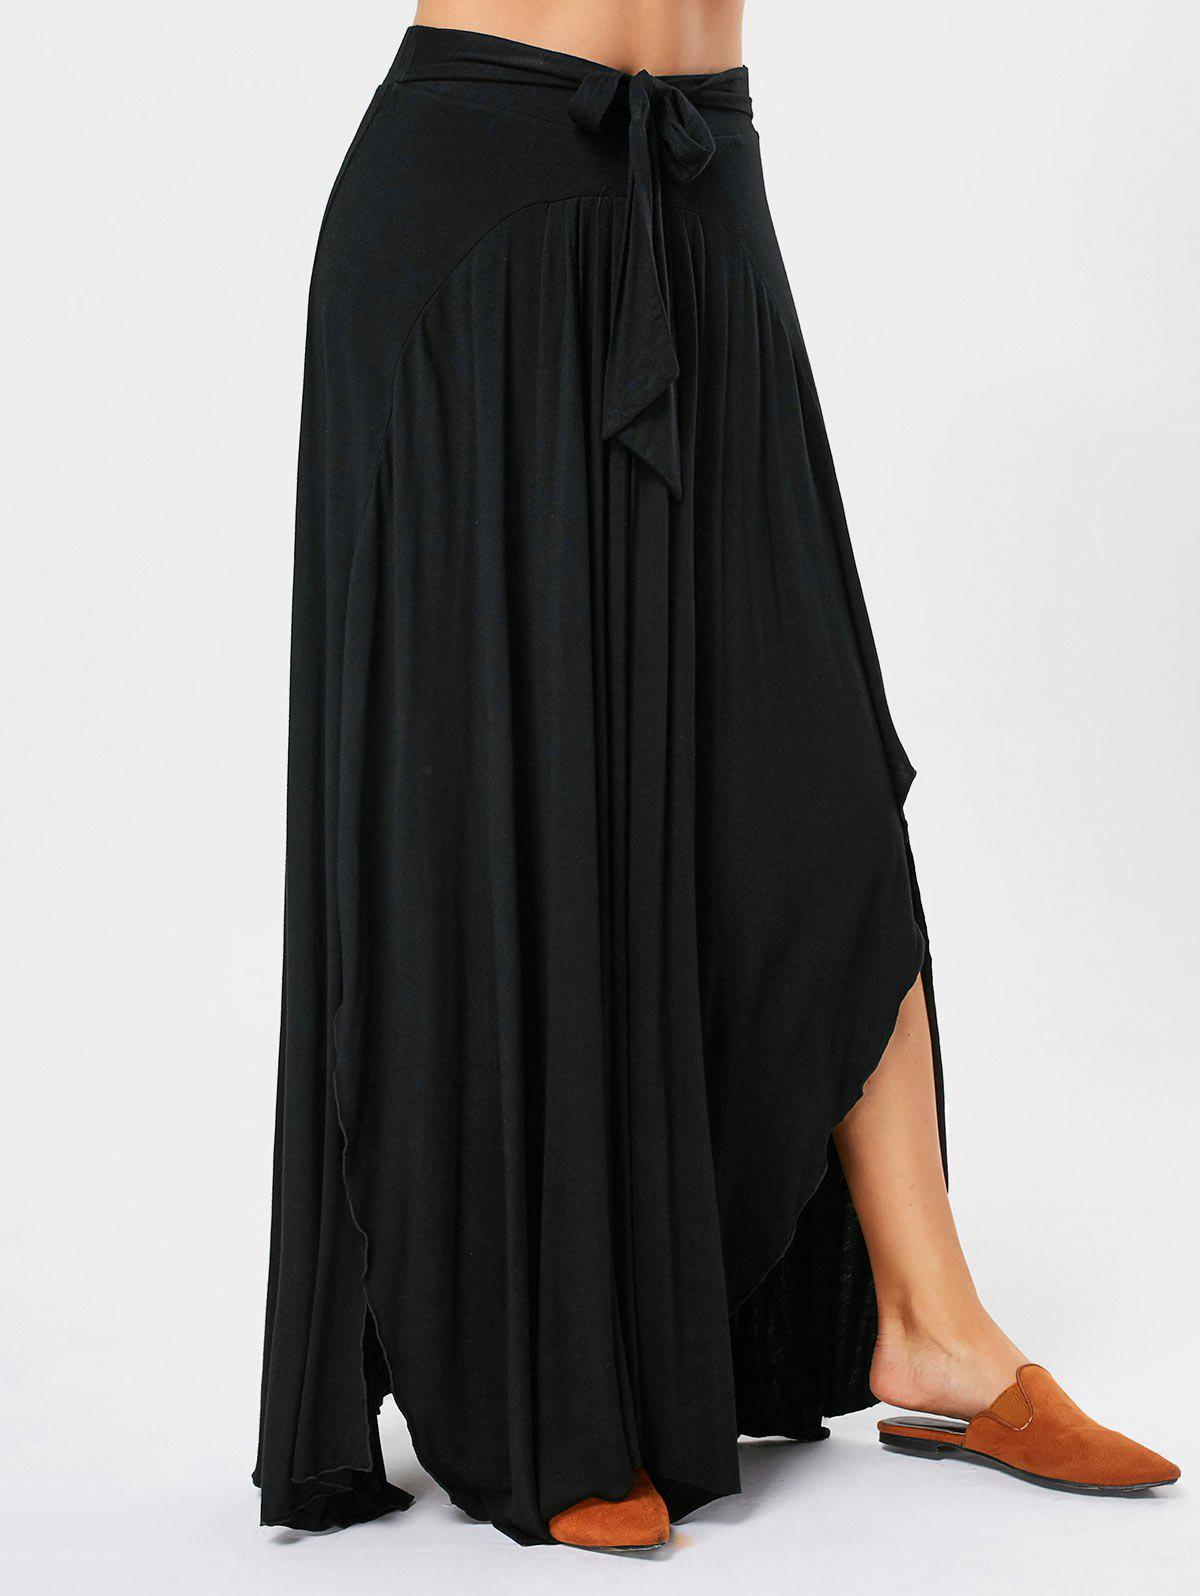 Asymmetrical Maxi Skirt with Bowknot Lace Up